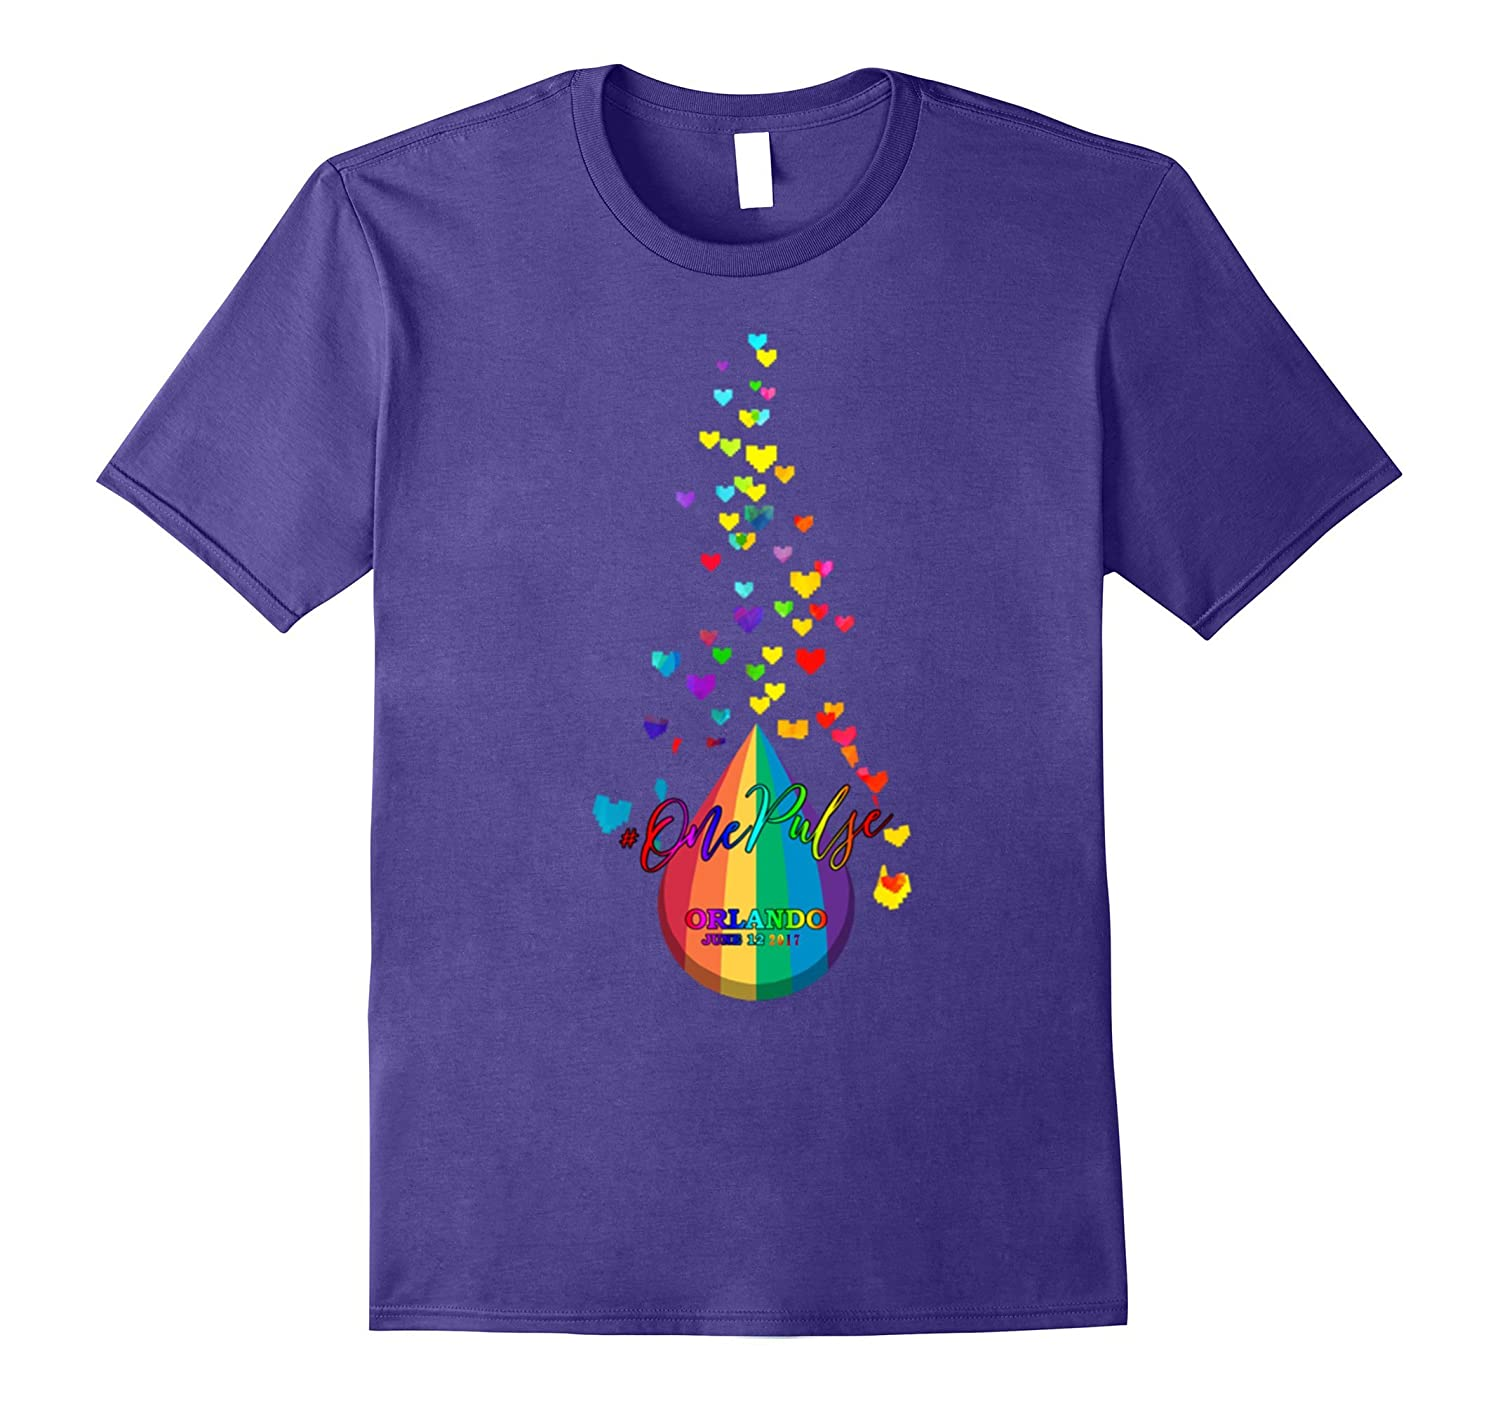 One Pulse orlando June 12 2017 Shirt National Equality Marc-CD